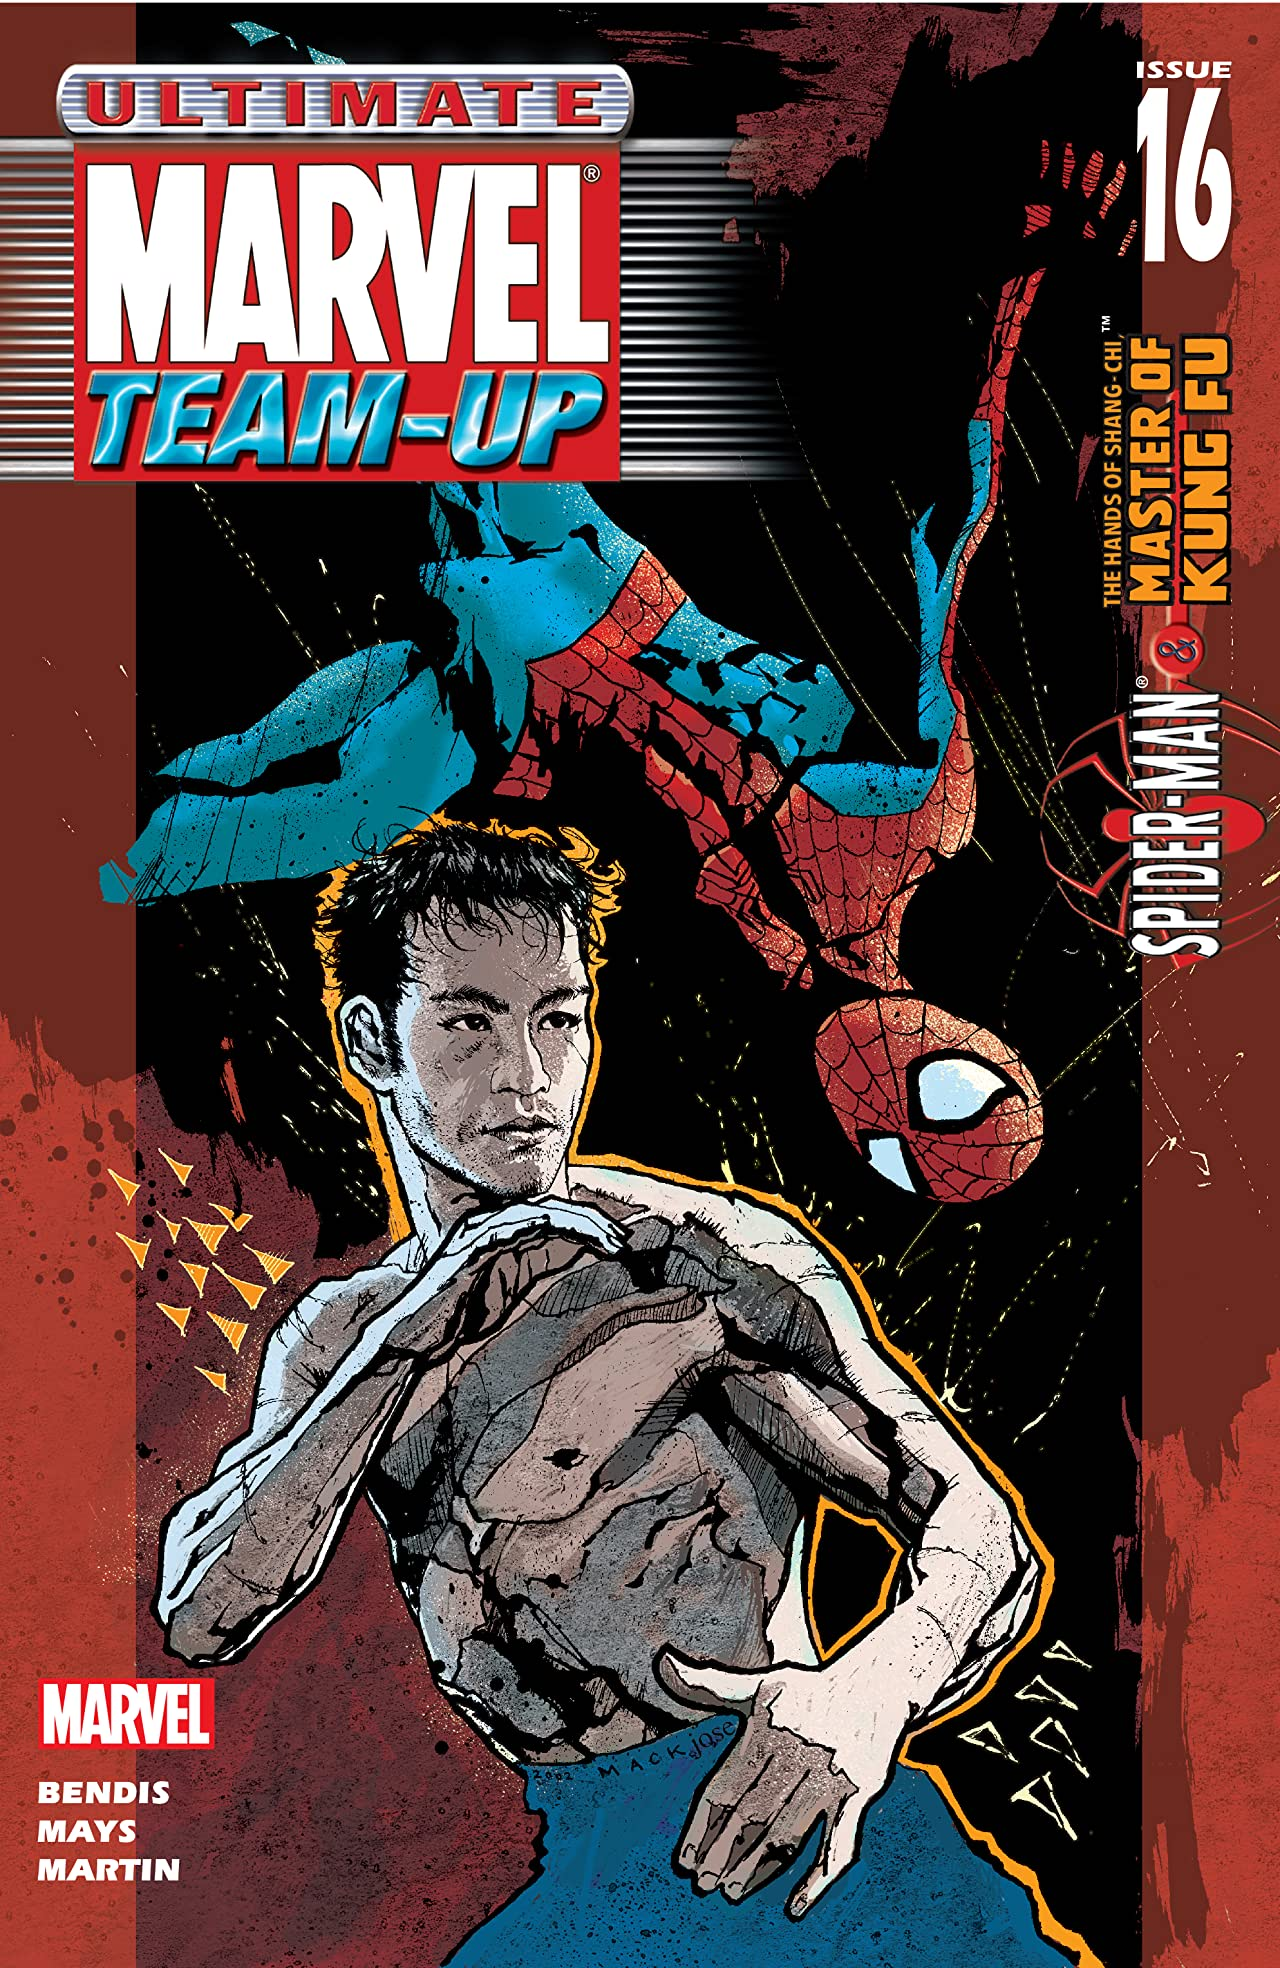 Ultimate Marvel Team-Up (2001-2002) #16